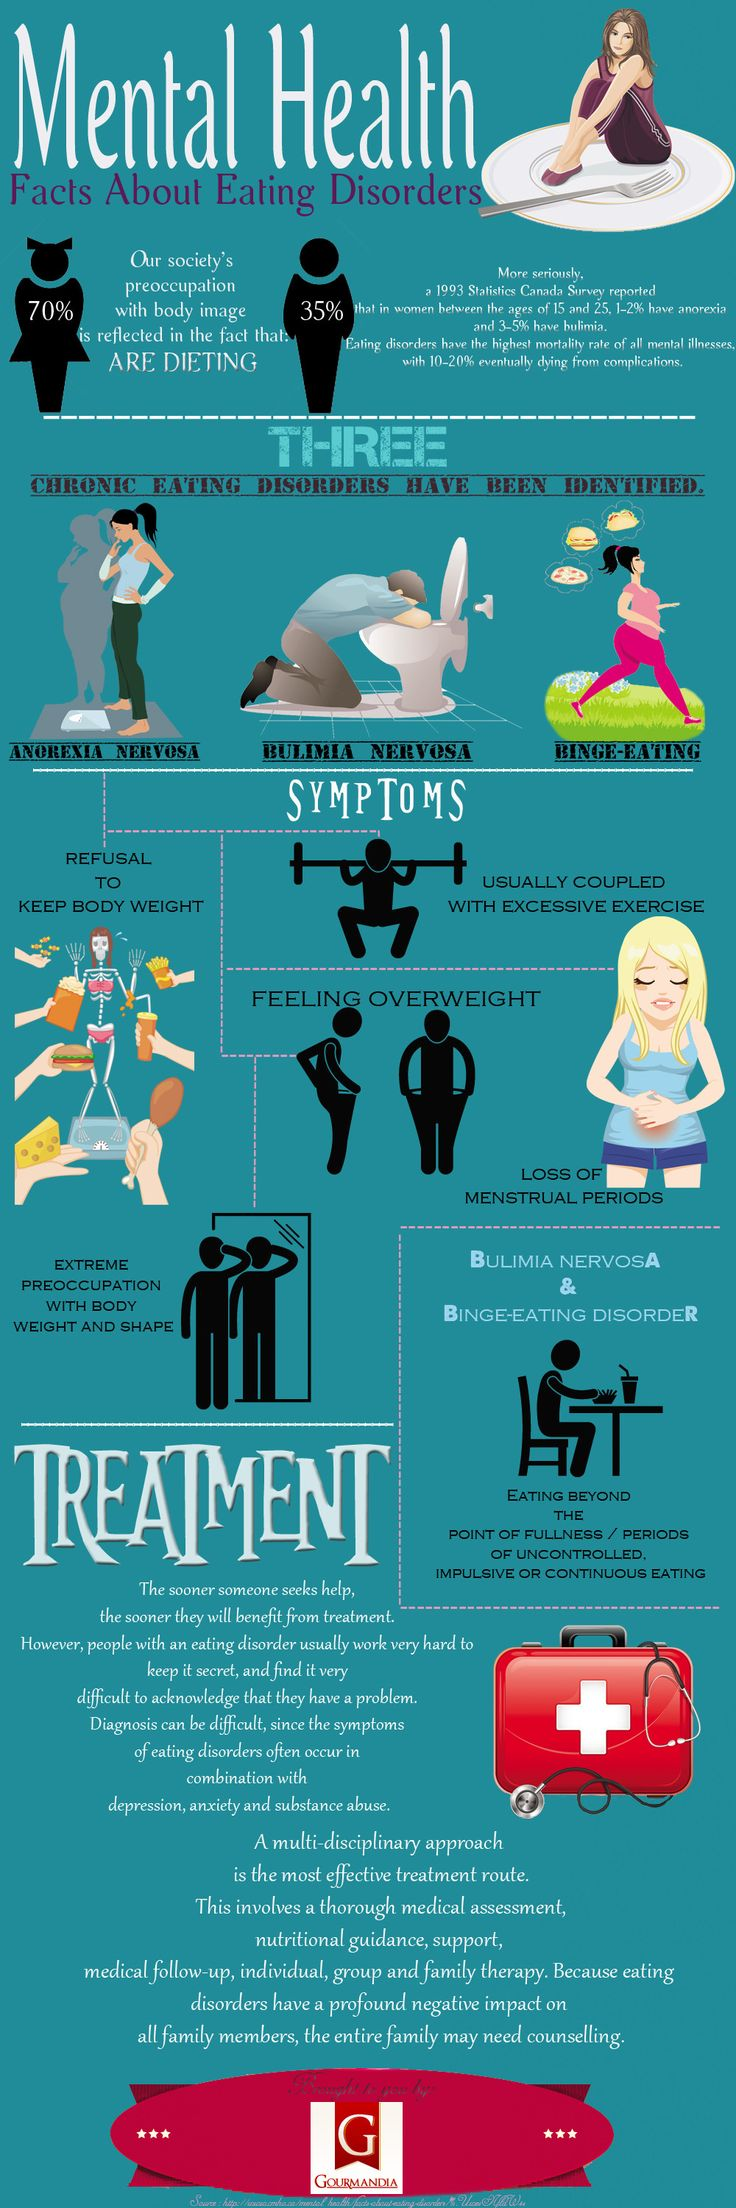 Mental Health: Facts About Eating Disorders   #Infographic #MentalHealth #EatingDisorders